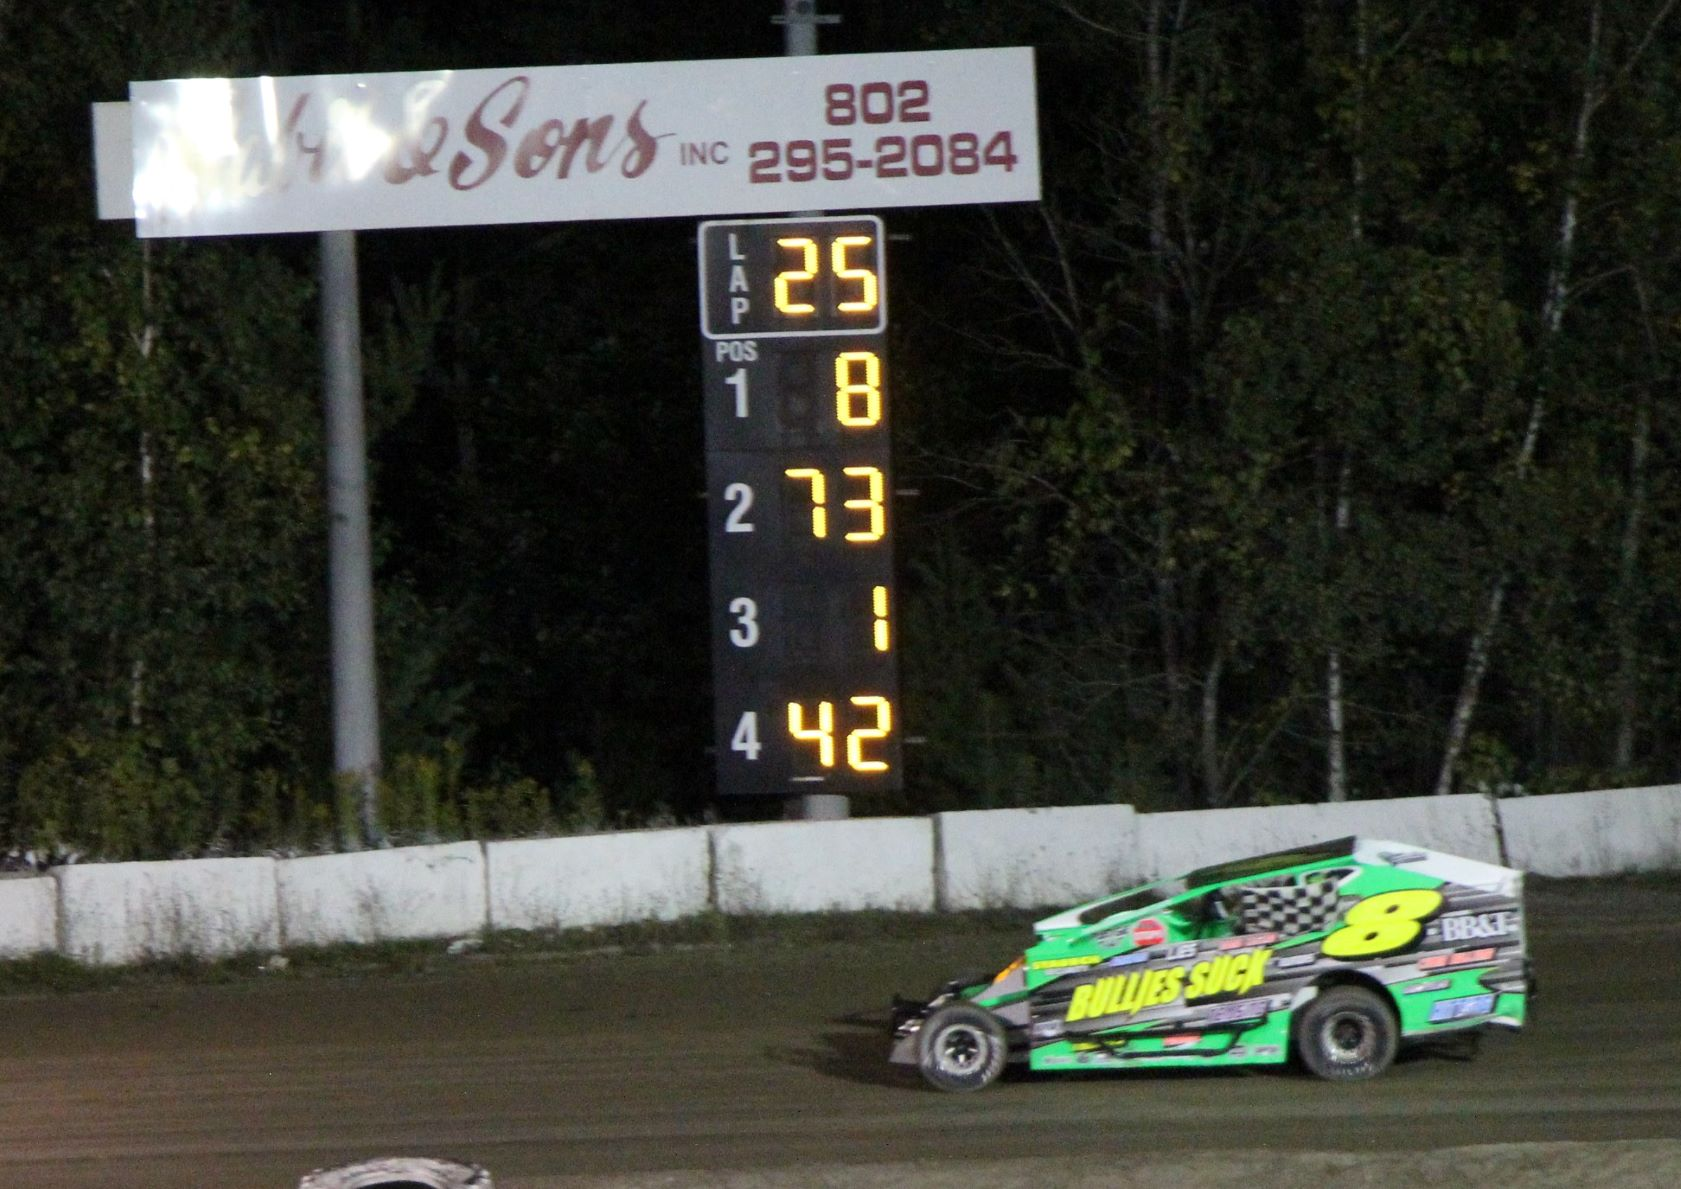 Stephen Lary gets his first win and Jordan Fornwalt crowned the champ in the Sabil & Sons DIRTcar Sportsman Modifieds